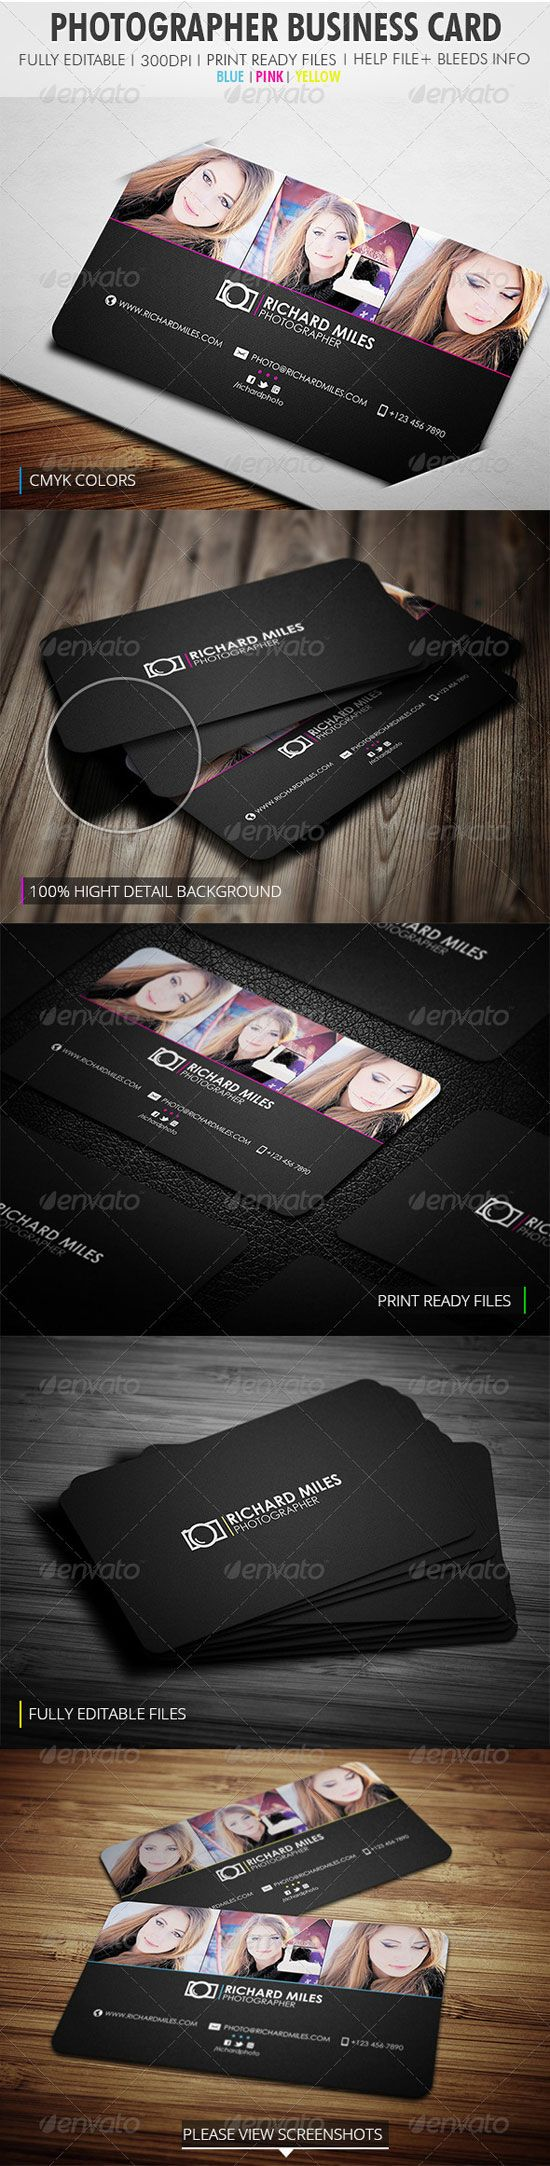 The Most Creative Photographer Business Cards | Pinterest ...